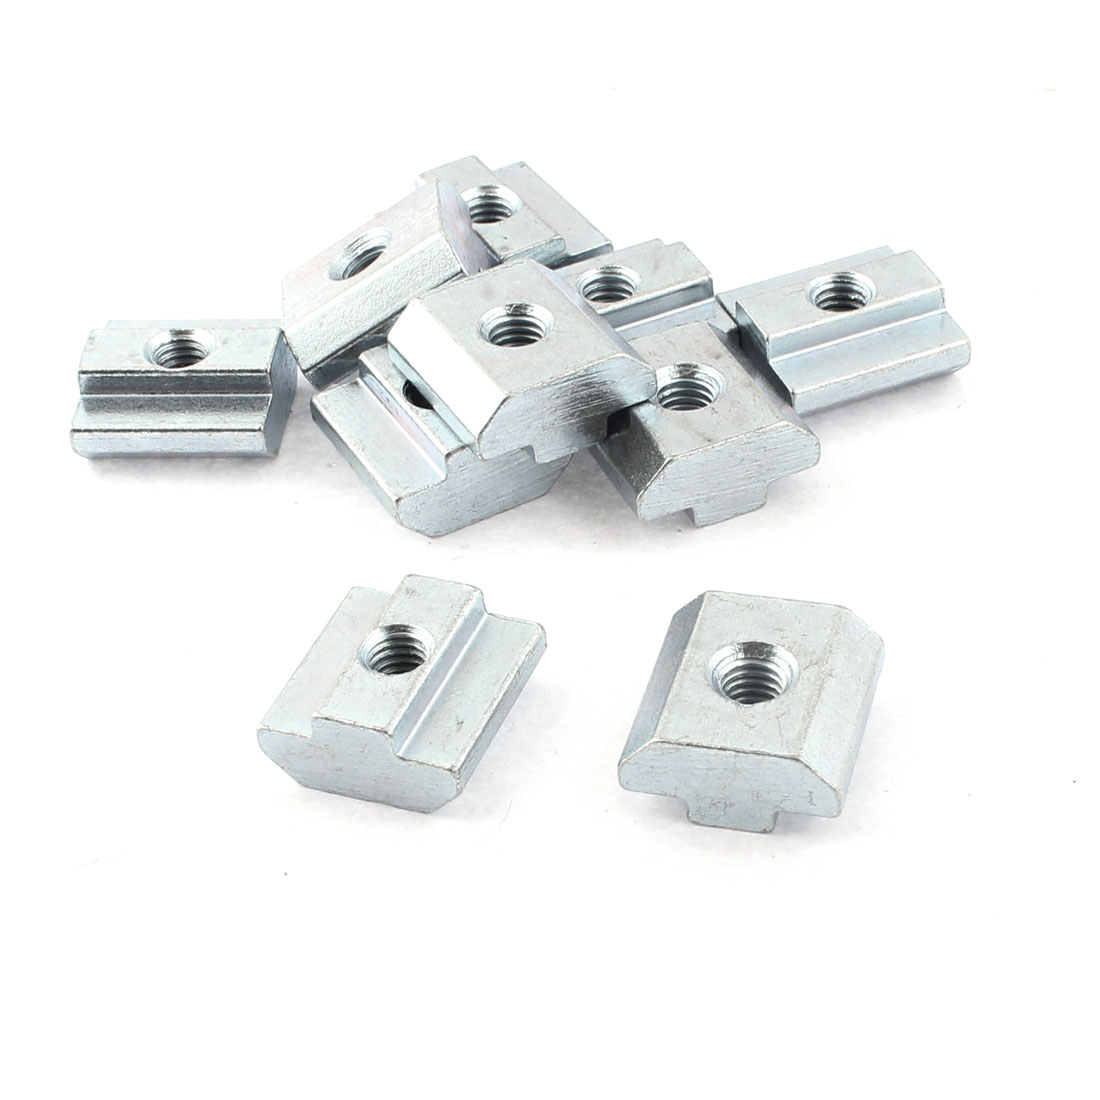 M6 Female Thread 40 Series Slide in Metal T-slot Nut Silver Tone 10pcs